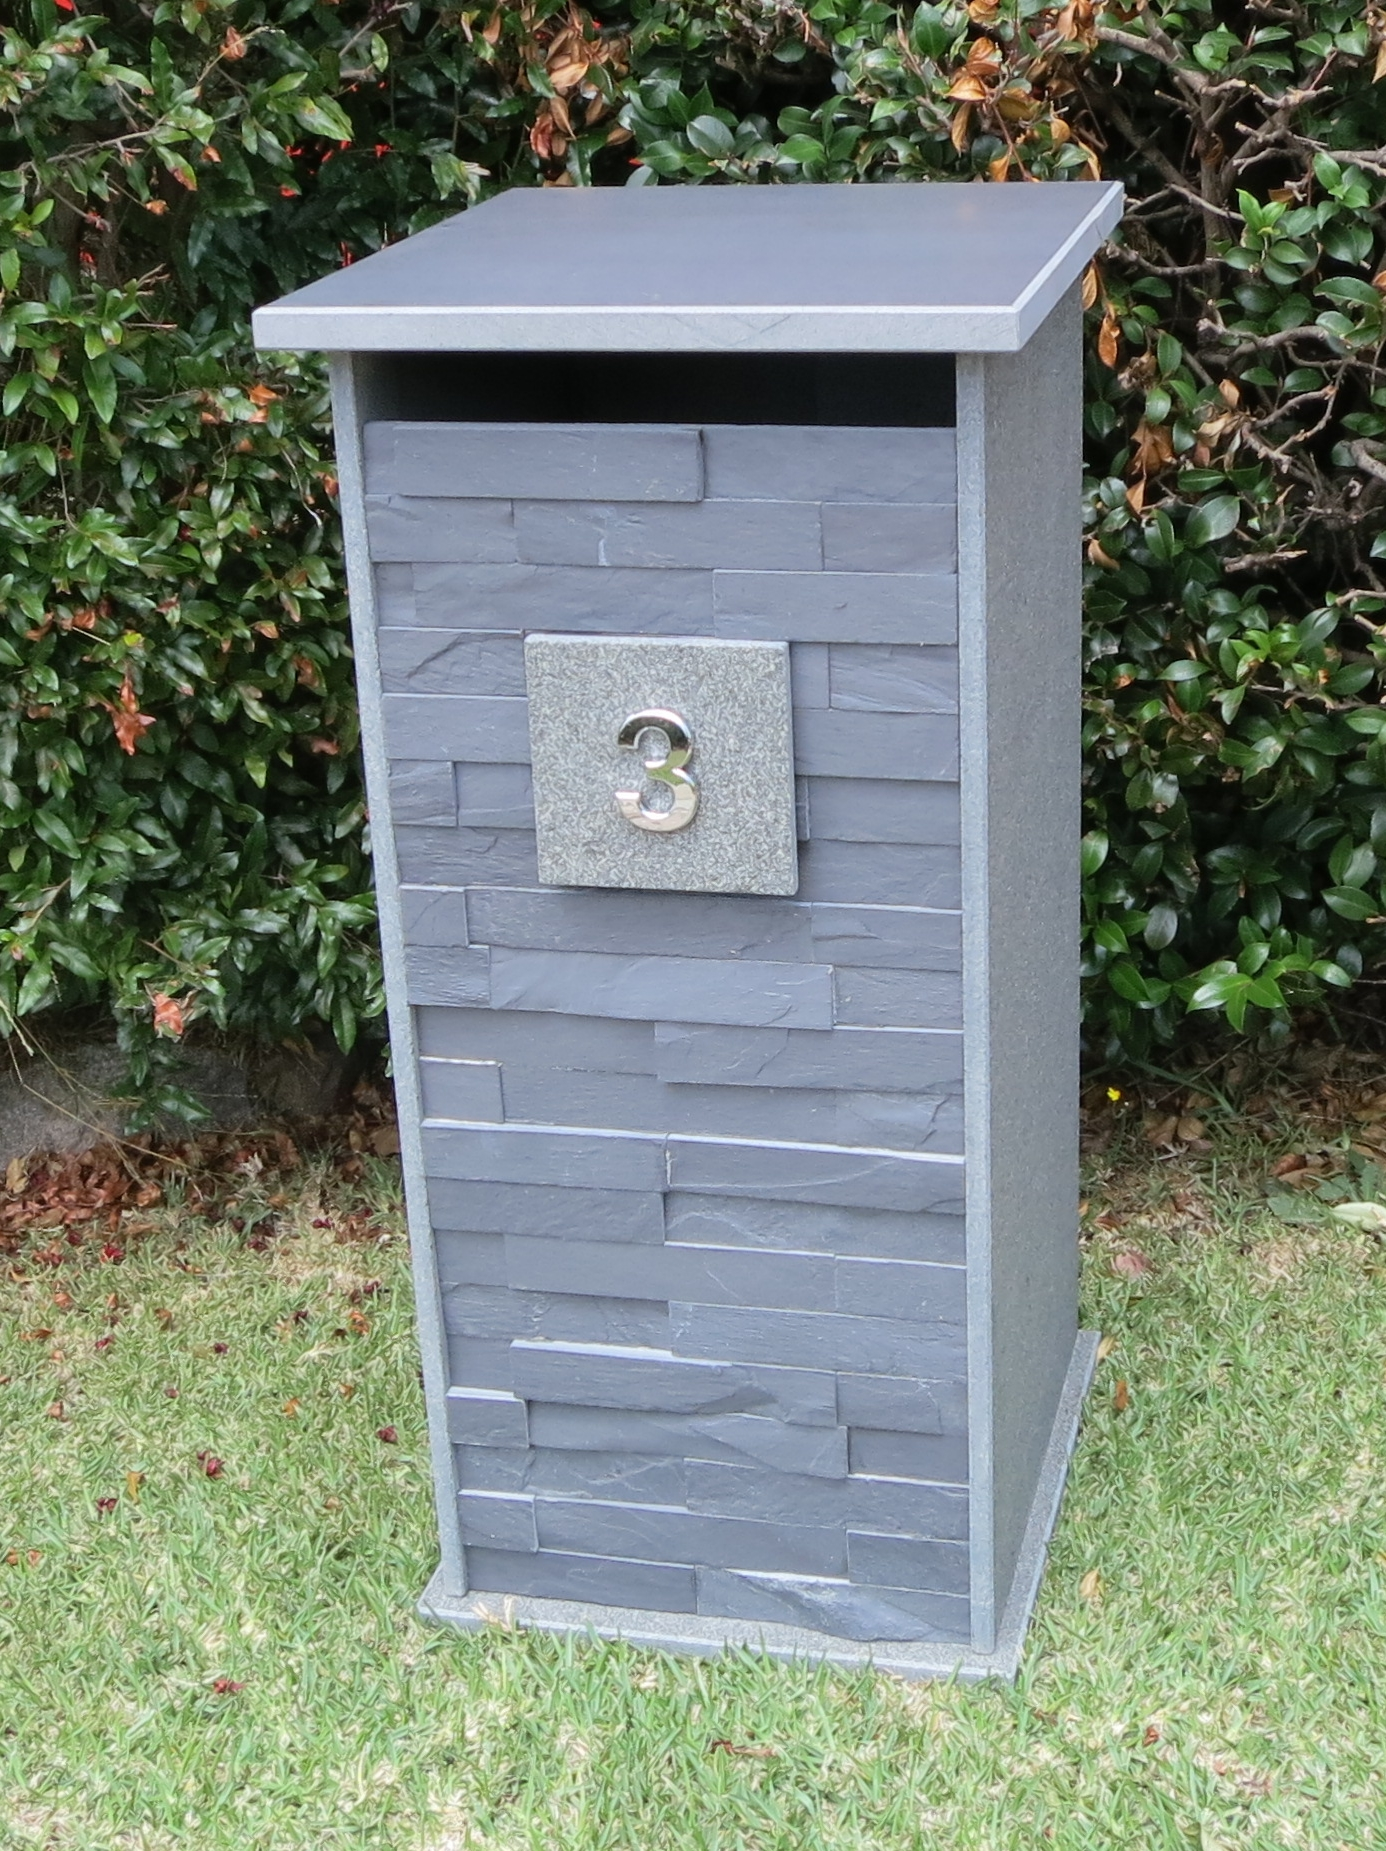 104. Bluestone letterbox customized letterbox for extra large envelops. One pc unit pick up from store only. 380x325mm floor size inside. Outside dimentions 430x410x850mm. $970